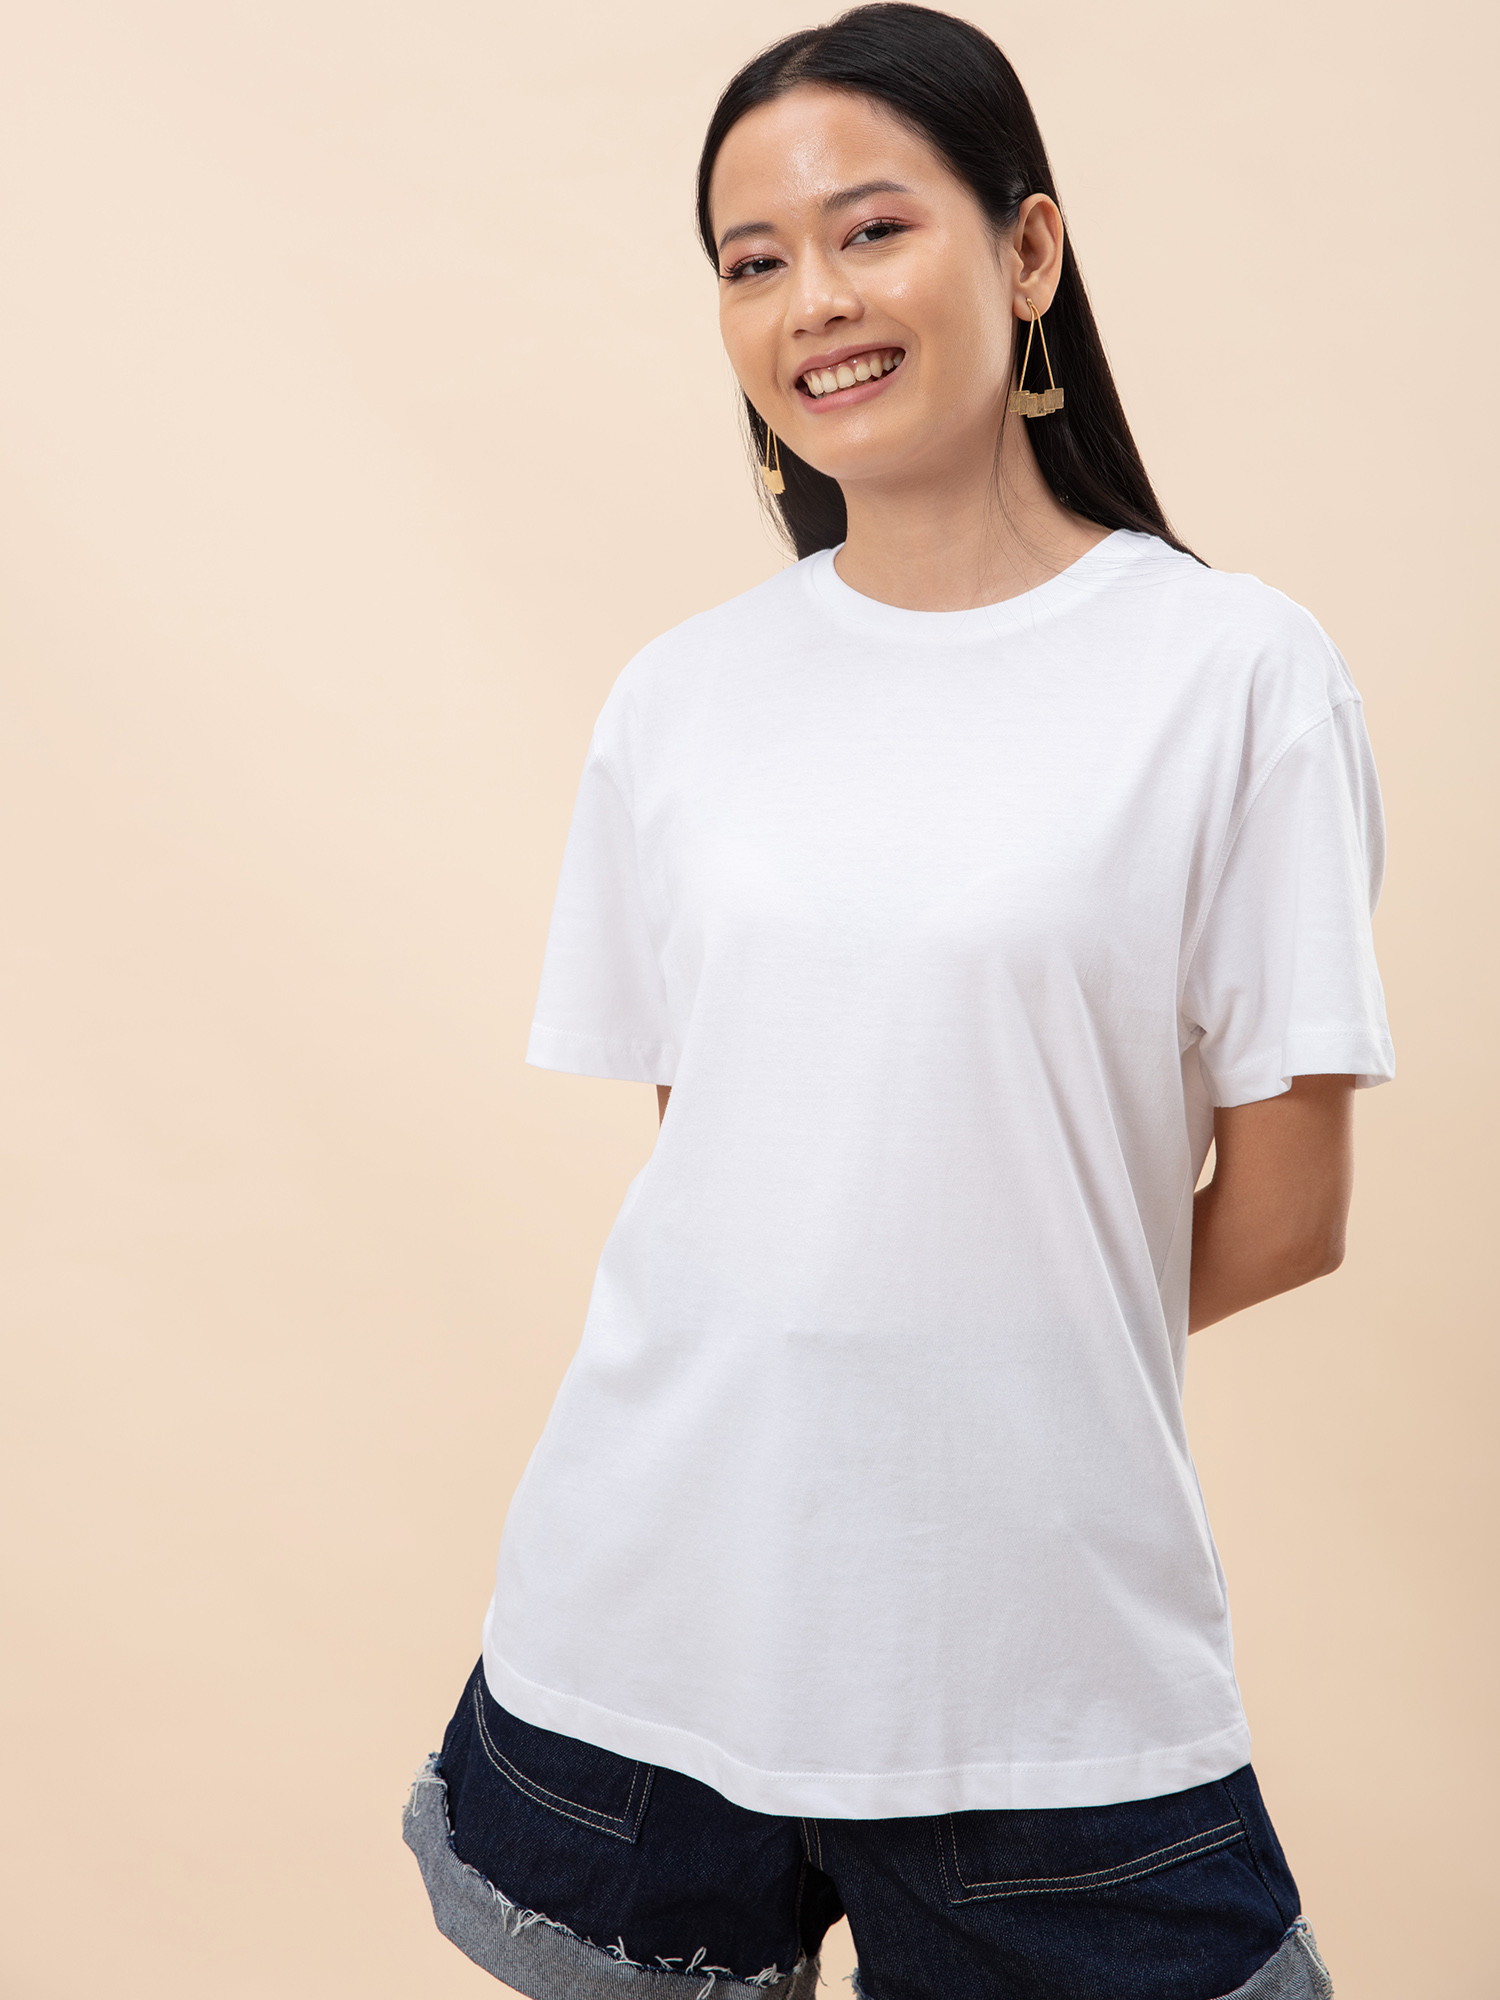 Tops-Oversized Love White T-shirt6